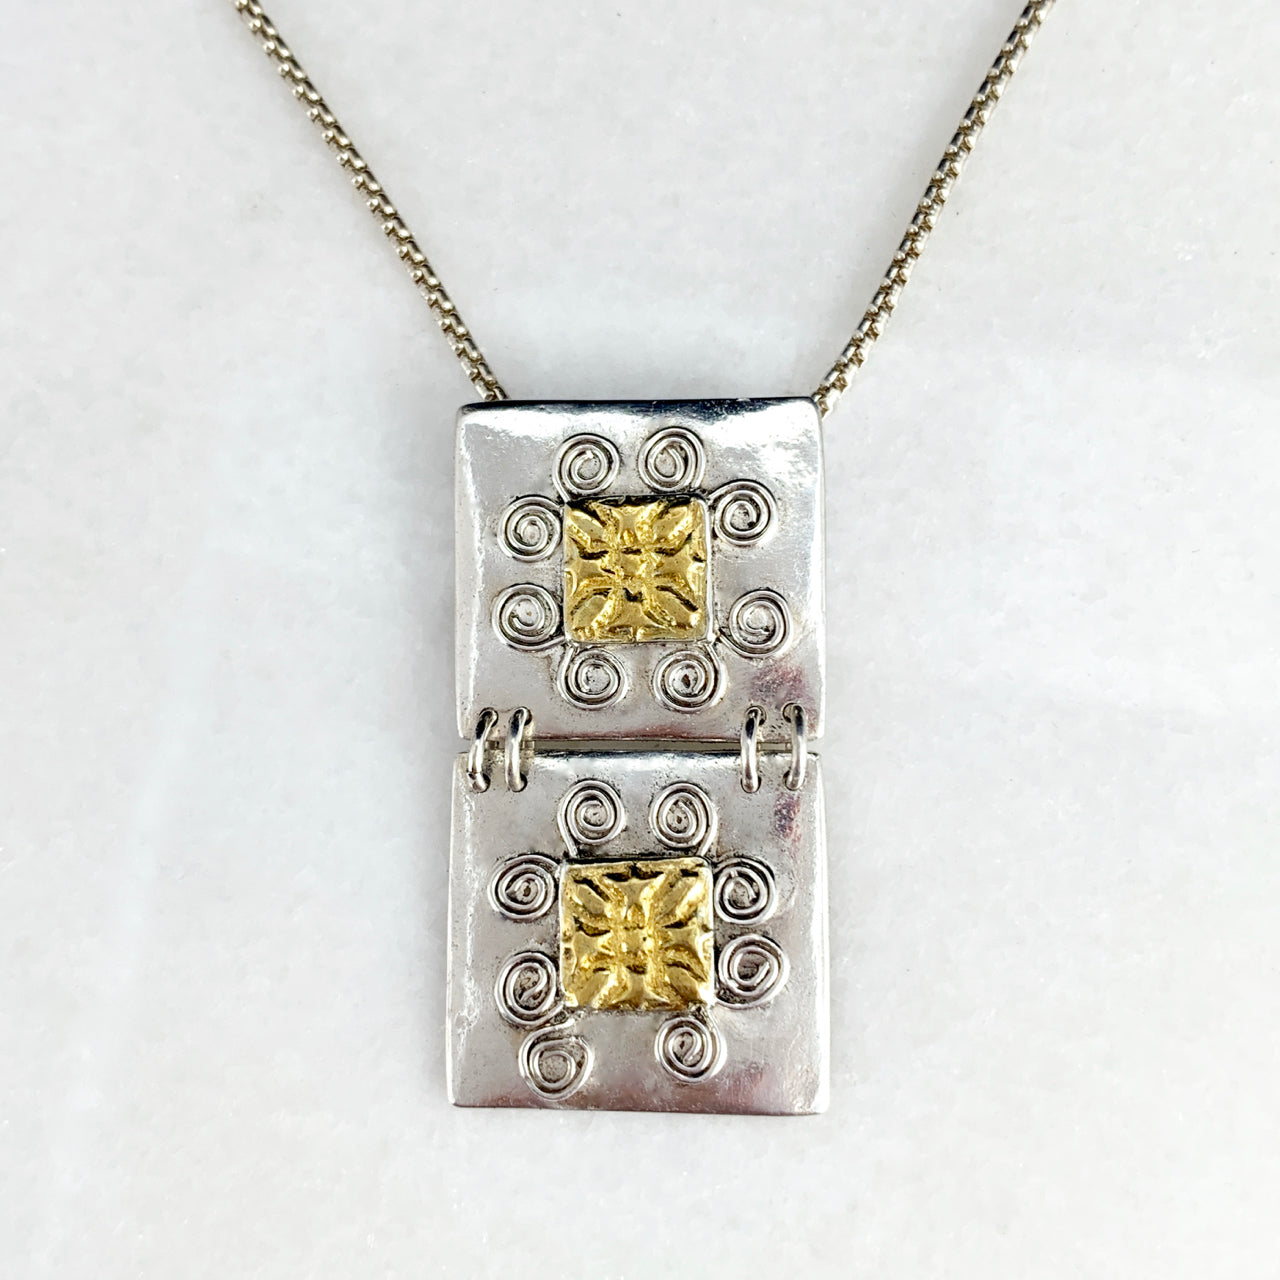 16 Spirals Tablets 24K Gilded Pendant Necklace